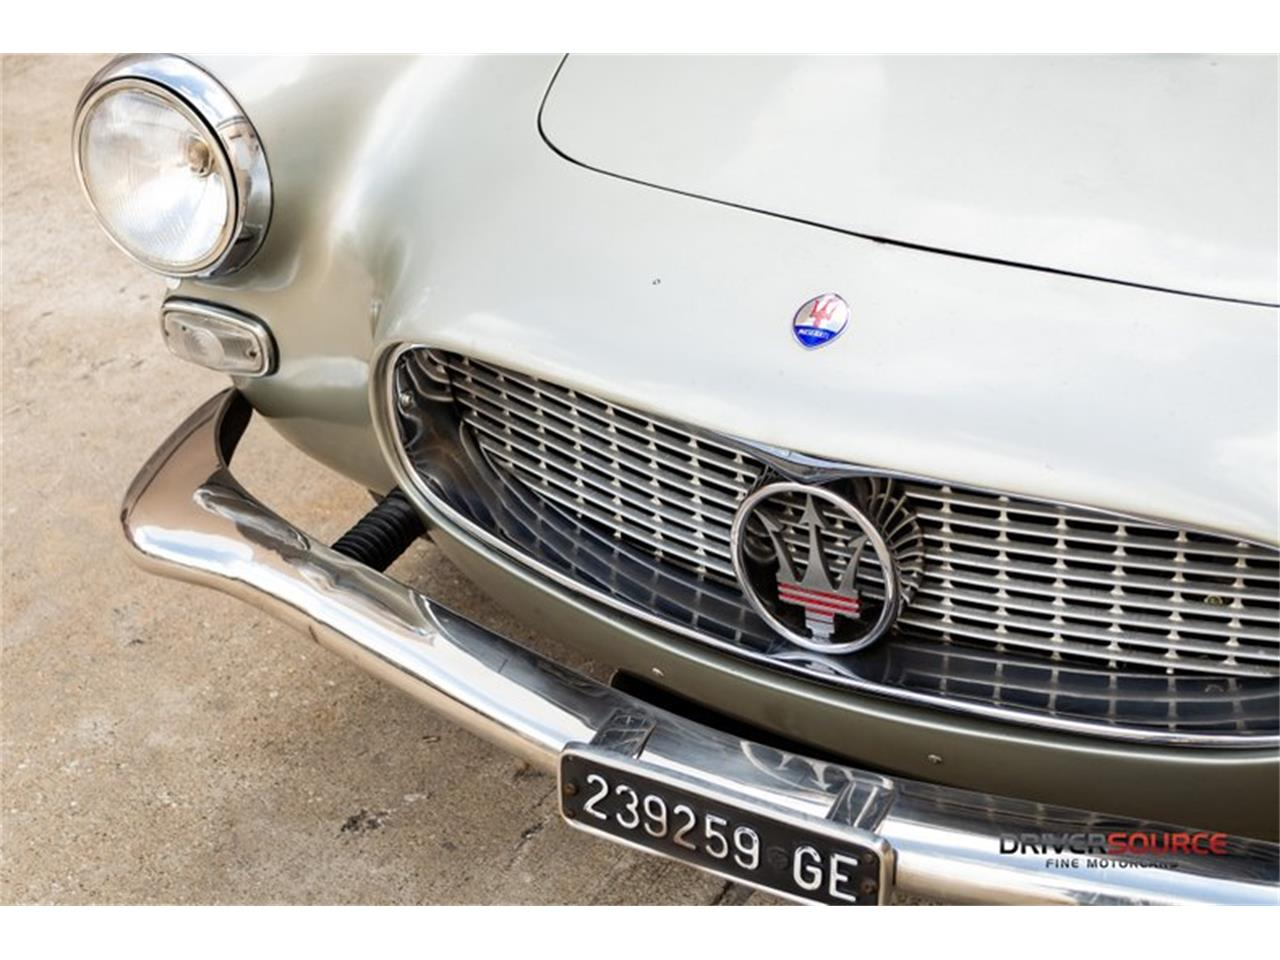 Large Picture of Classic 1962 3500 located in Texas Offered by Driversource - OCR7